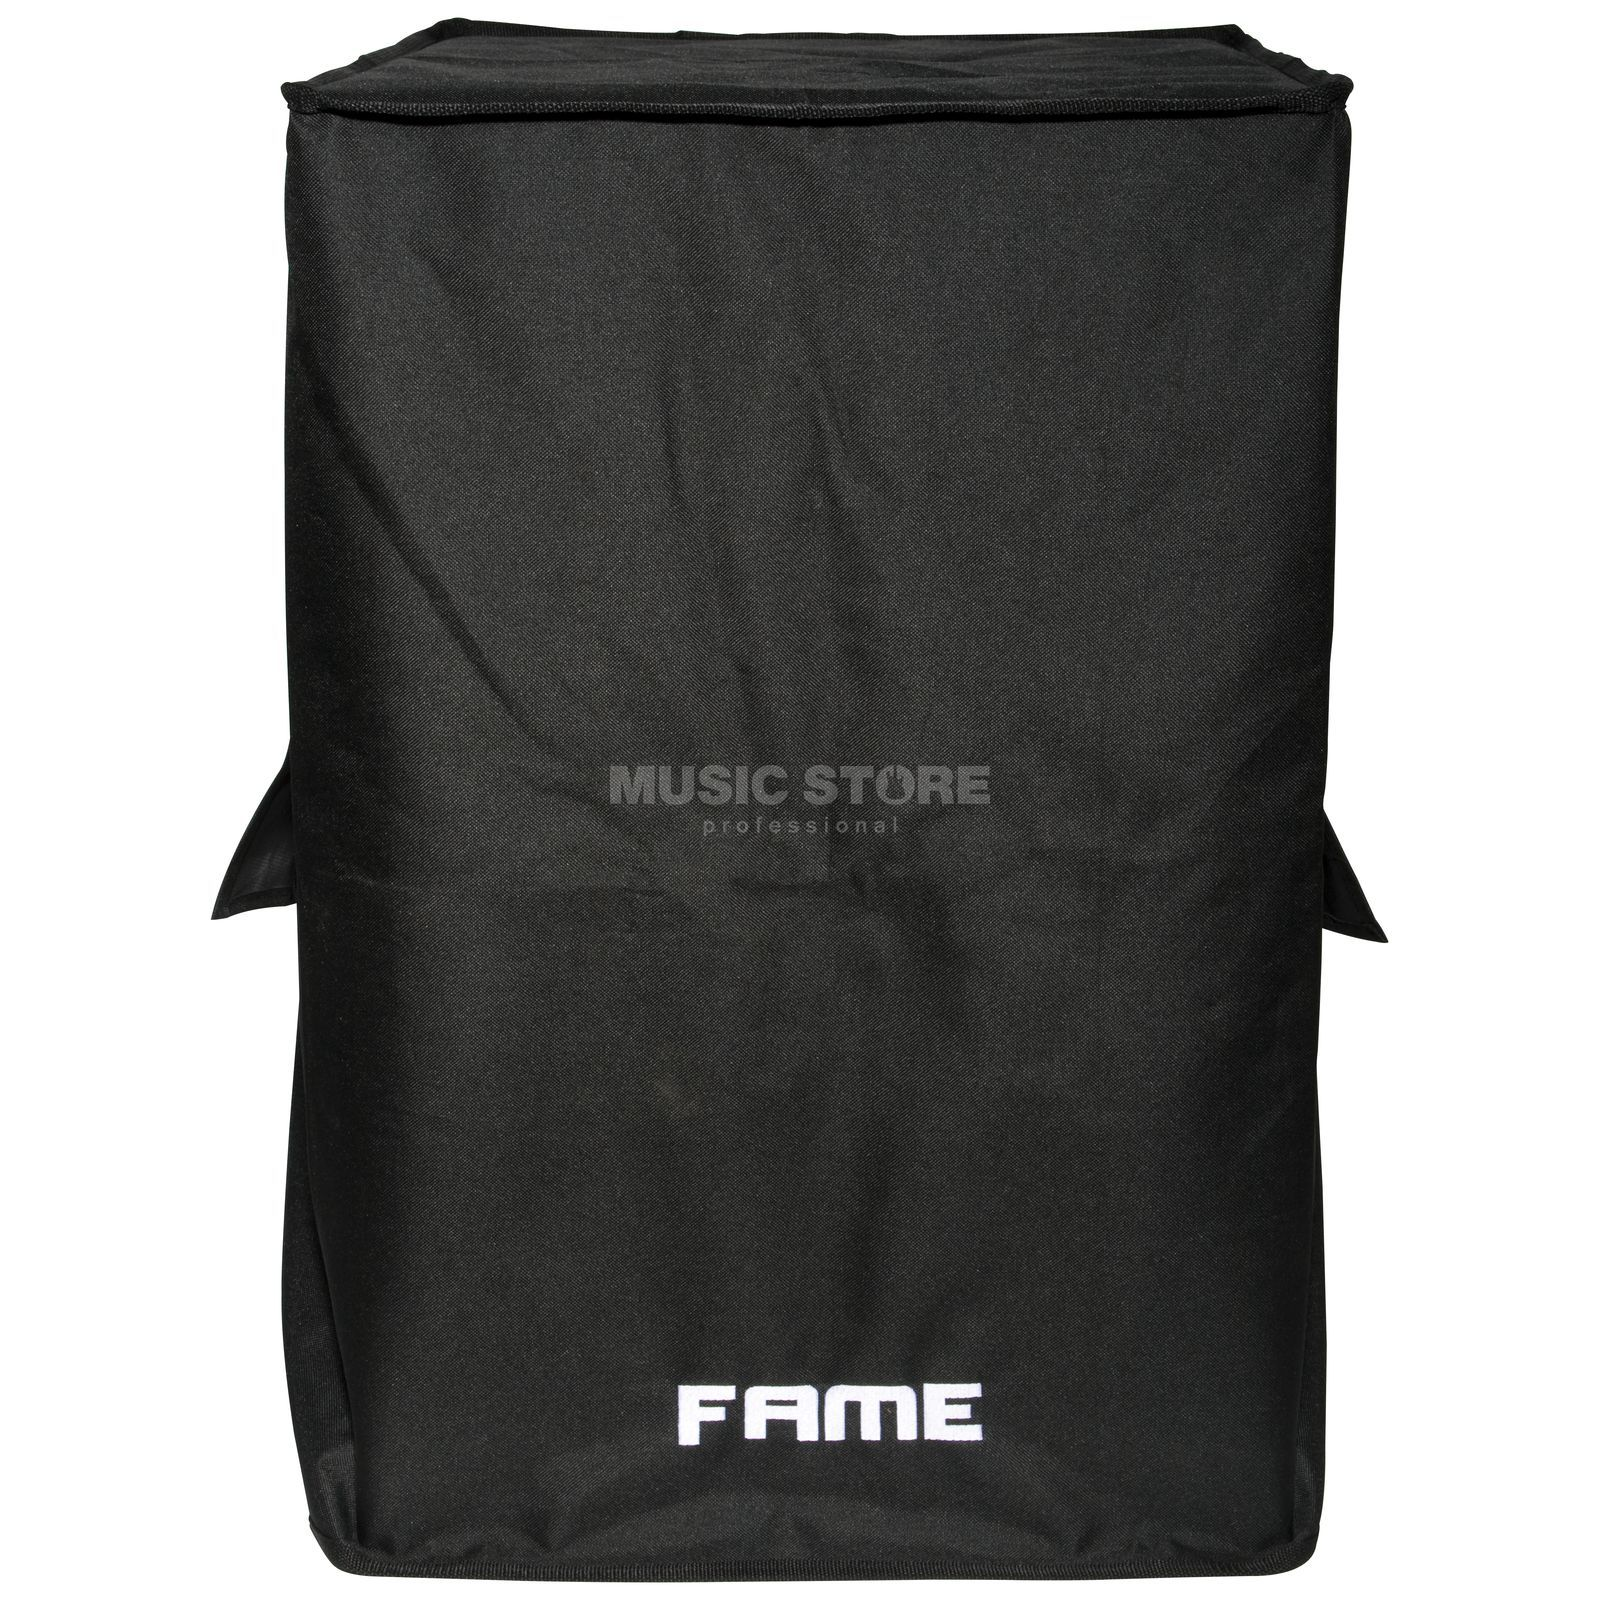 Fame audio Protective Cover Set for Soundpack 15 Produktbillede